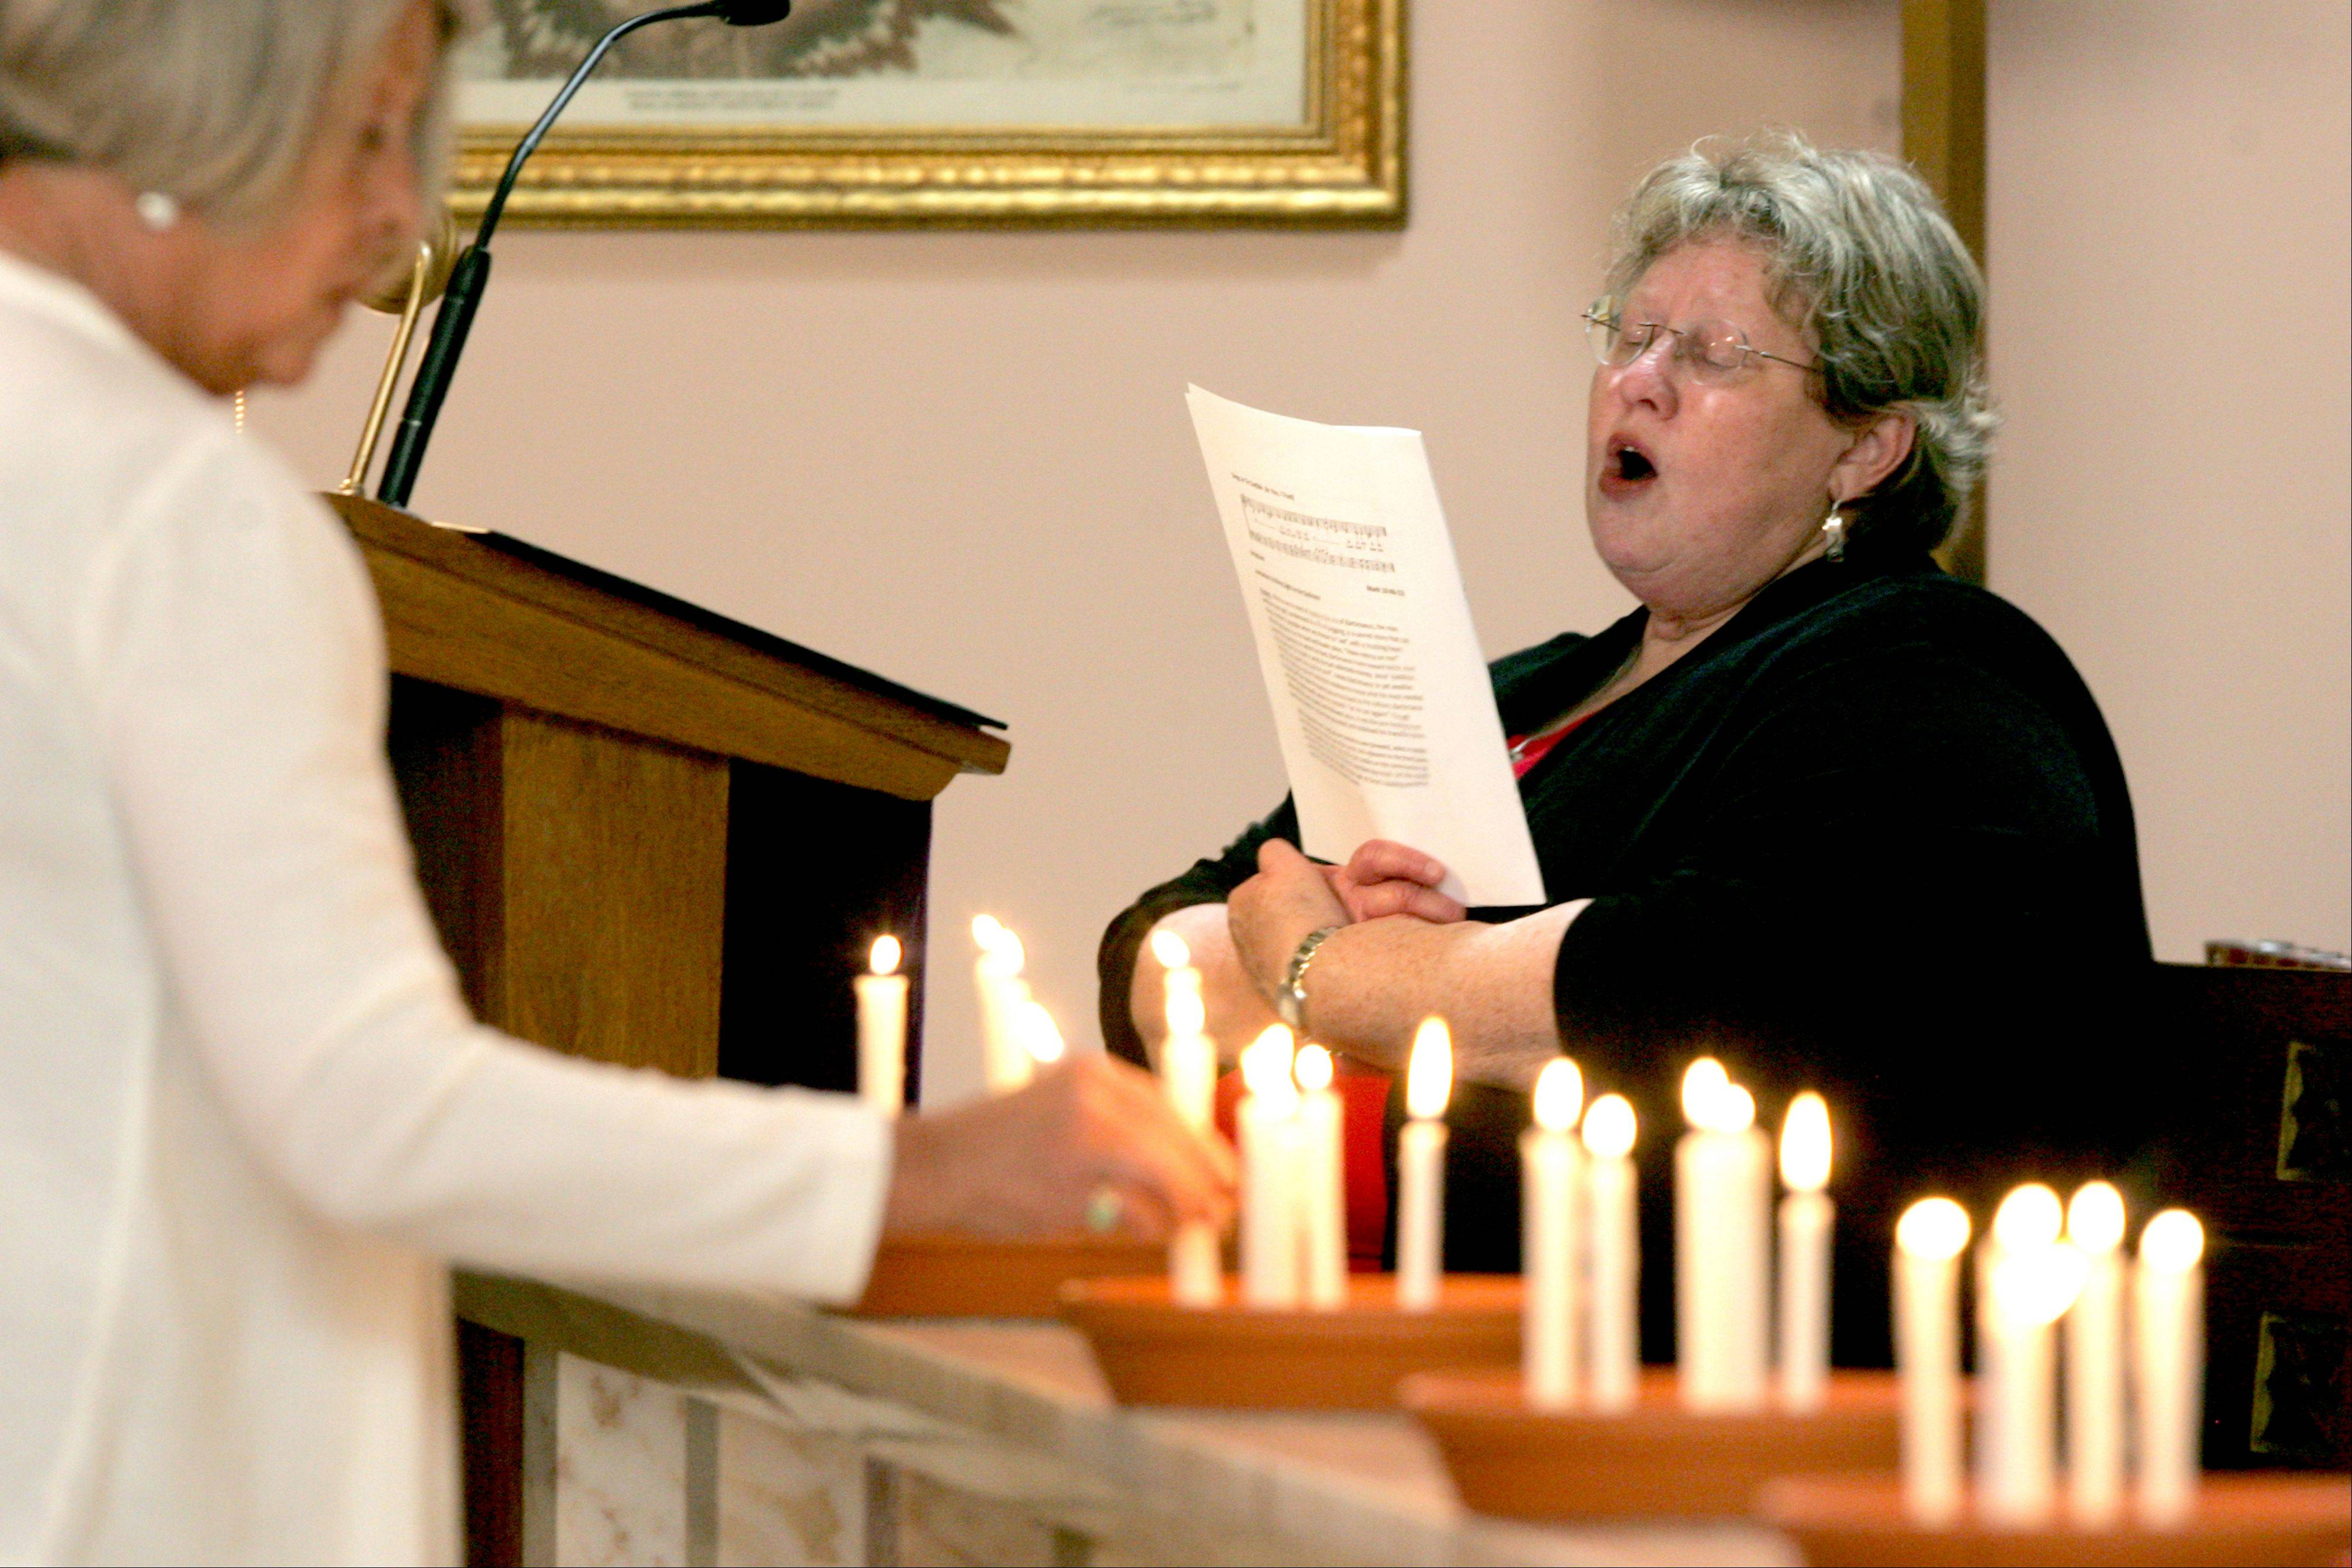 The Rev. Cyndi Gavin, pastor of St. John United Church of Christ Church in Aurora, leads a Taizé service at St. Peter Catholic Church in Aurora.